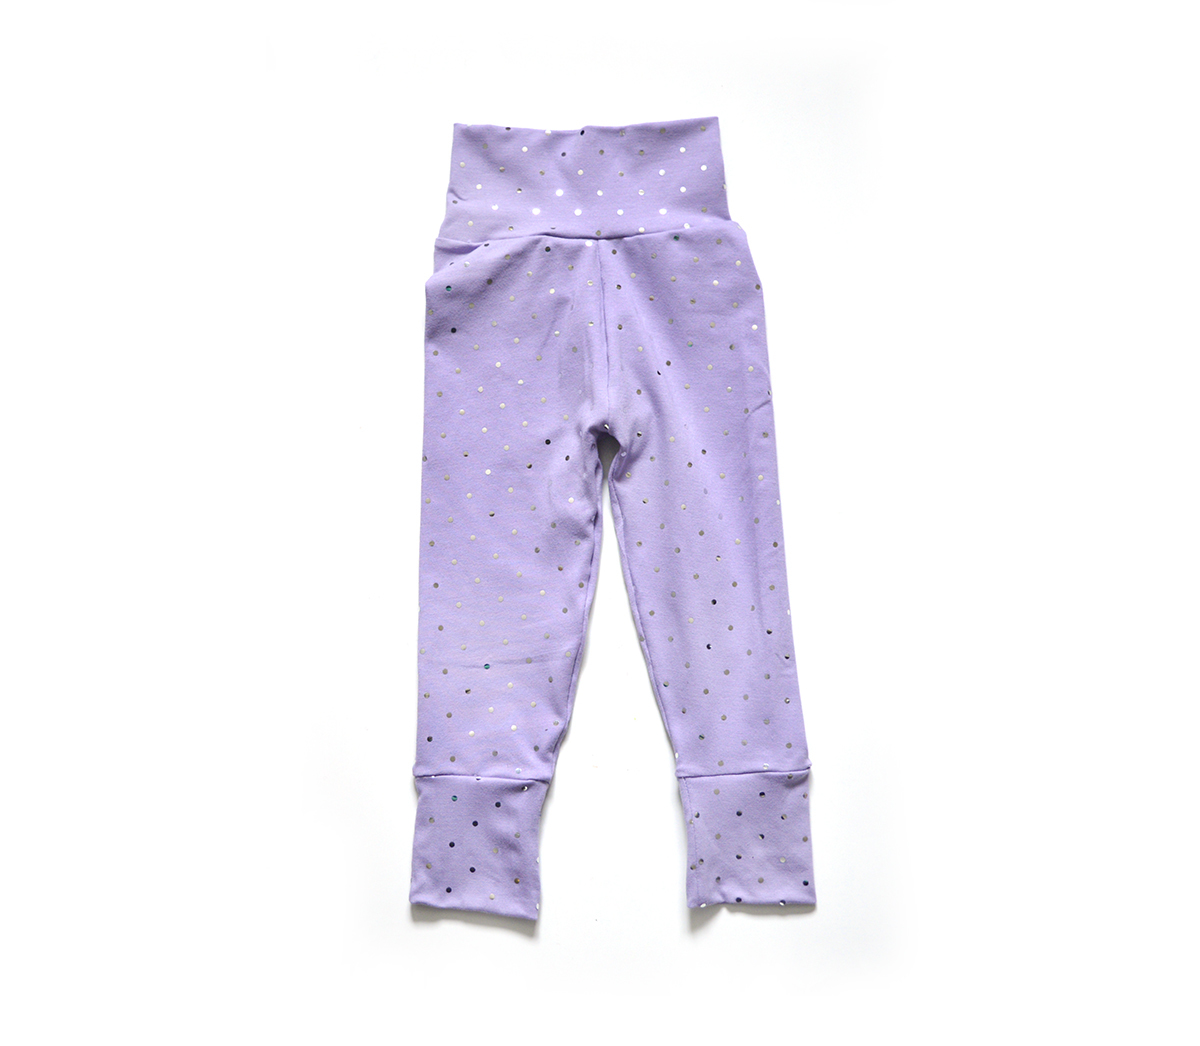 Little Sprout Pants™ Spangled Lavender- Cotton 00773